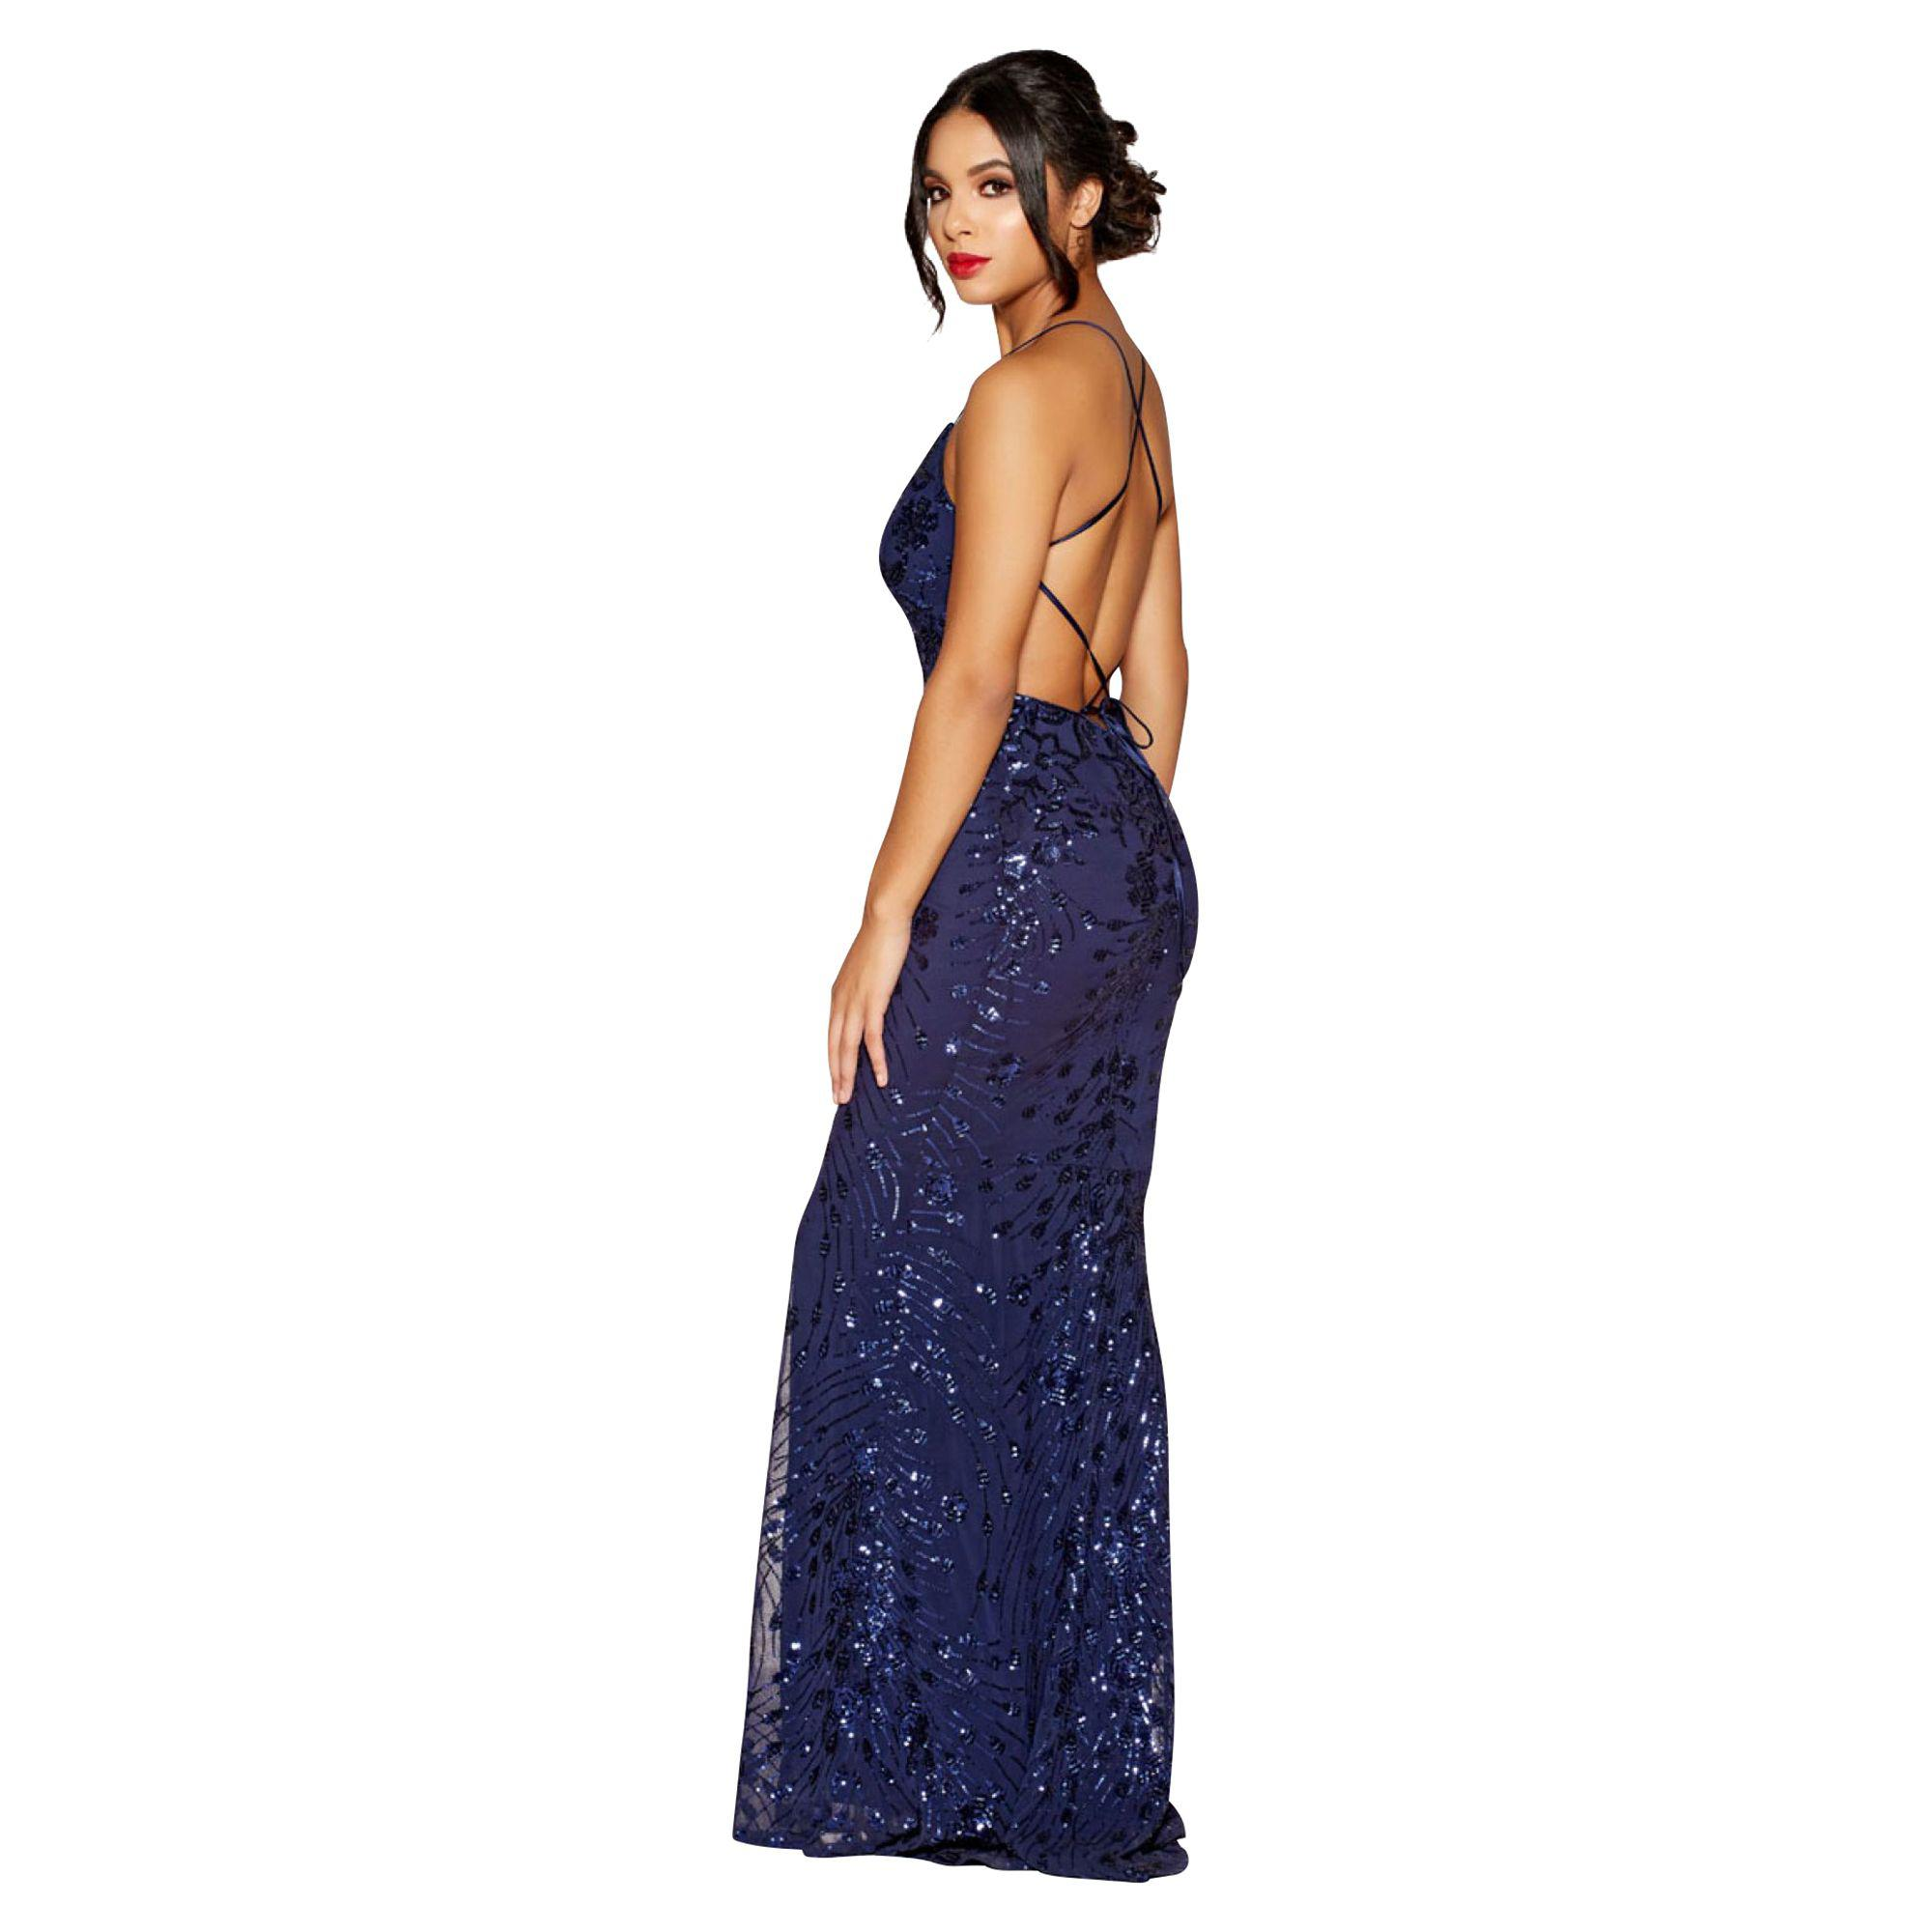 f7e94ee2 Quiz - Blue Navy Sequin Cross Back Fishtail Maxi Dress - Lyst. View  fullscreen